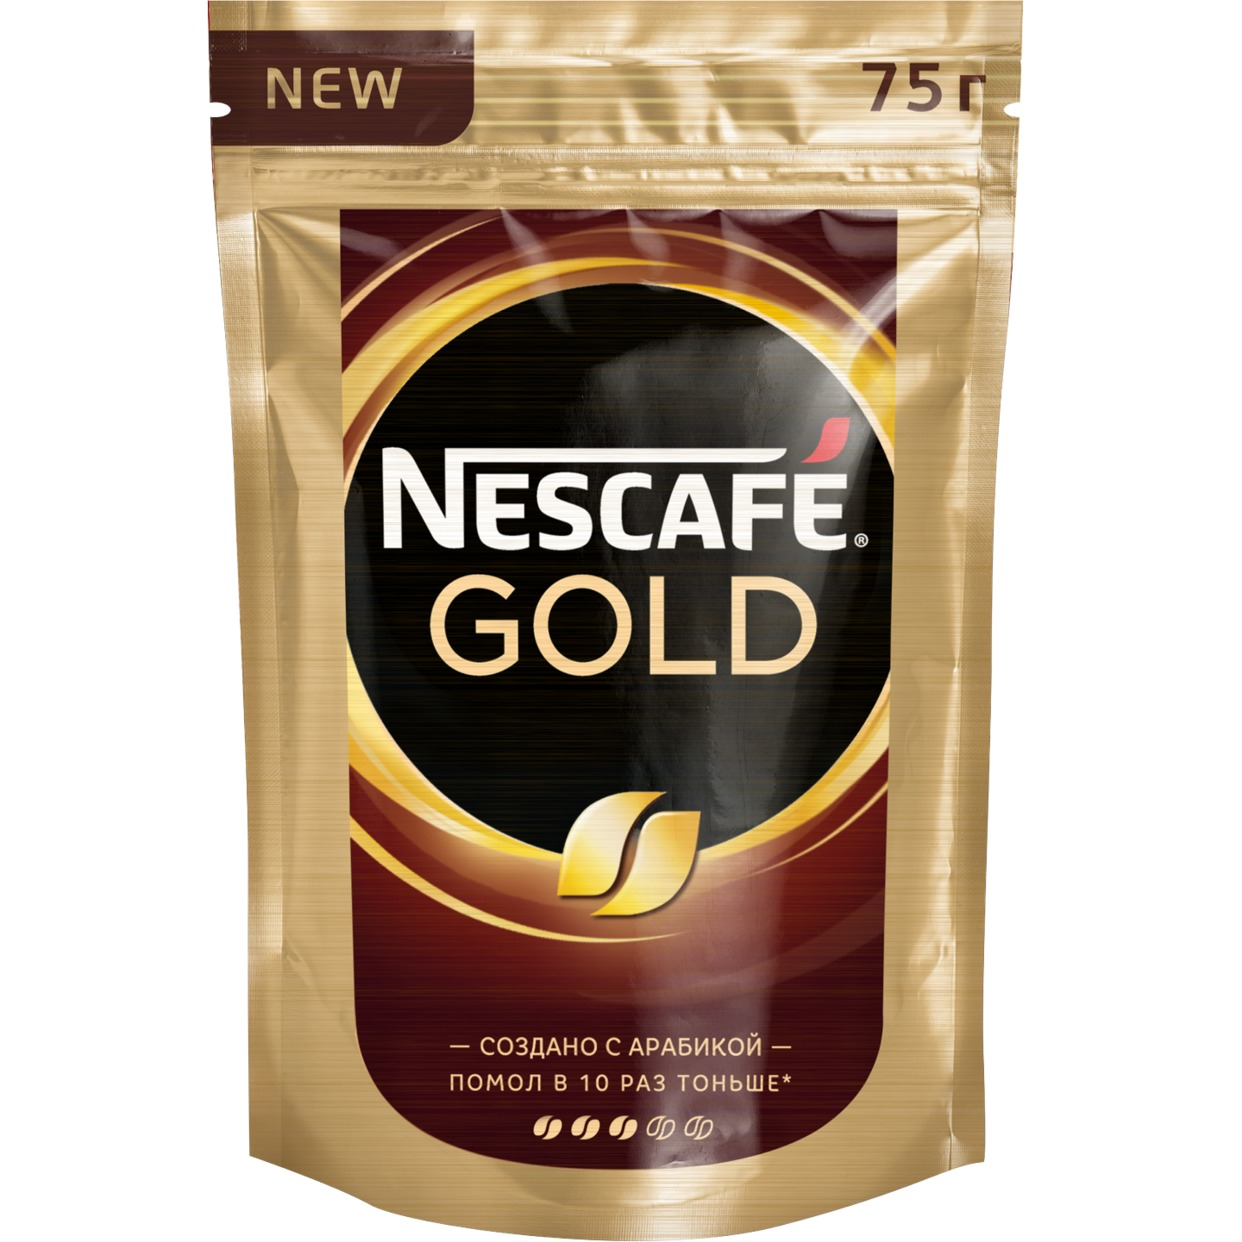 Кофе Nescafe Gold, растворимый, 75 г